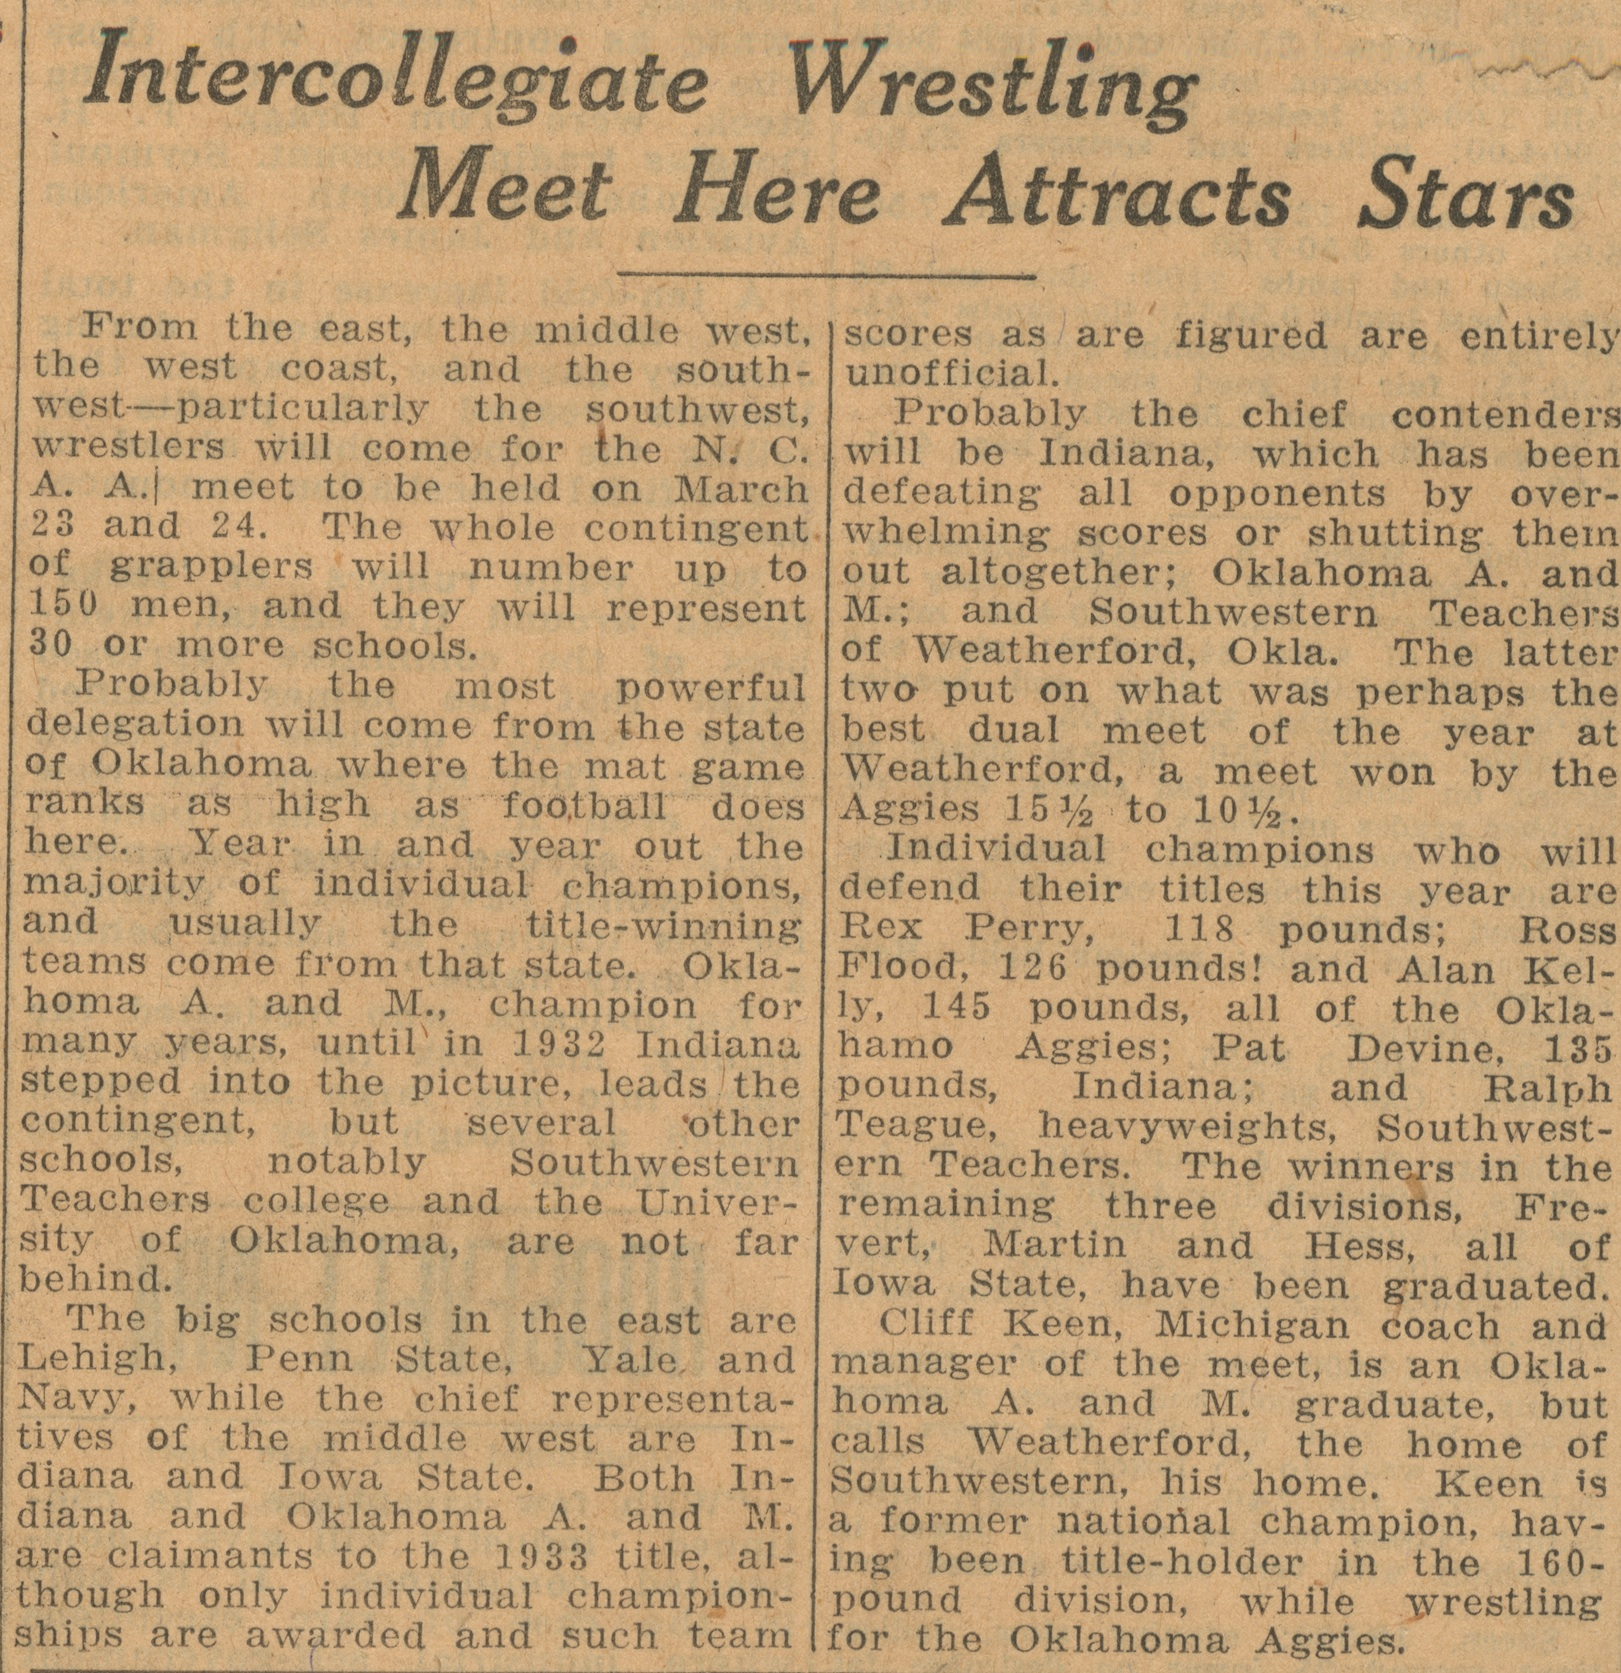 Intercollegiate Wrestling Meet Here Attracts Stars image